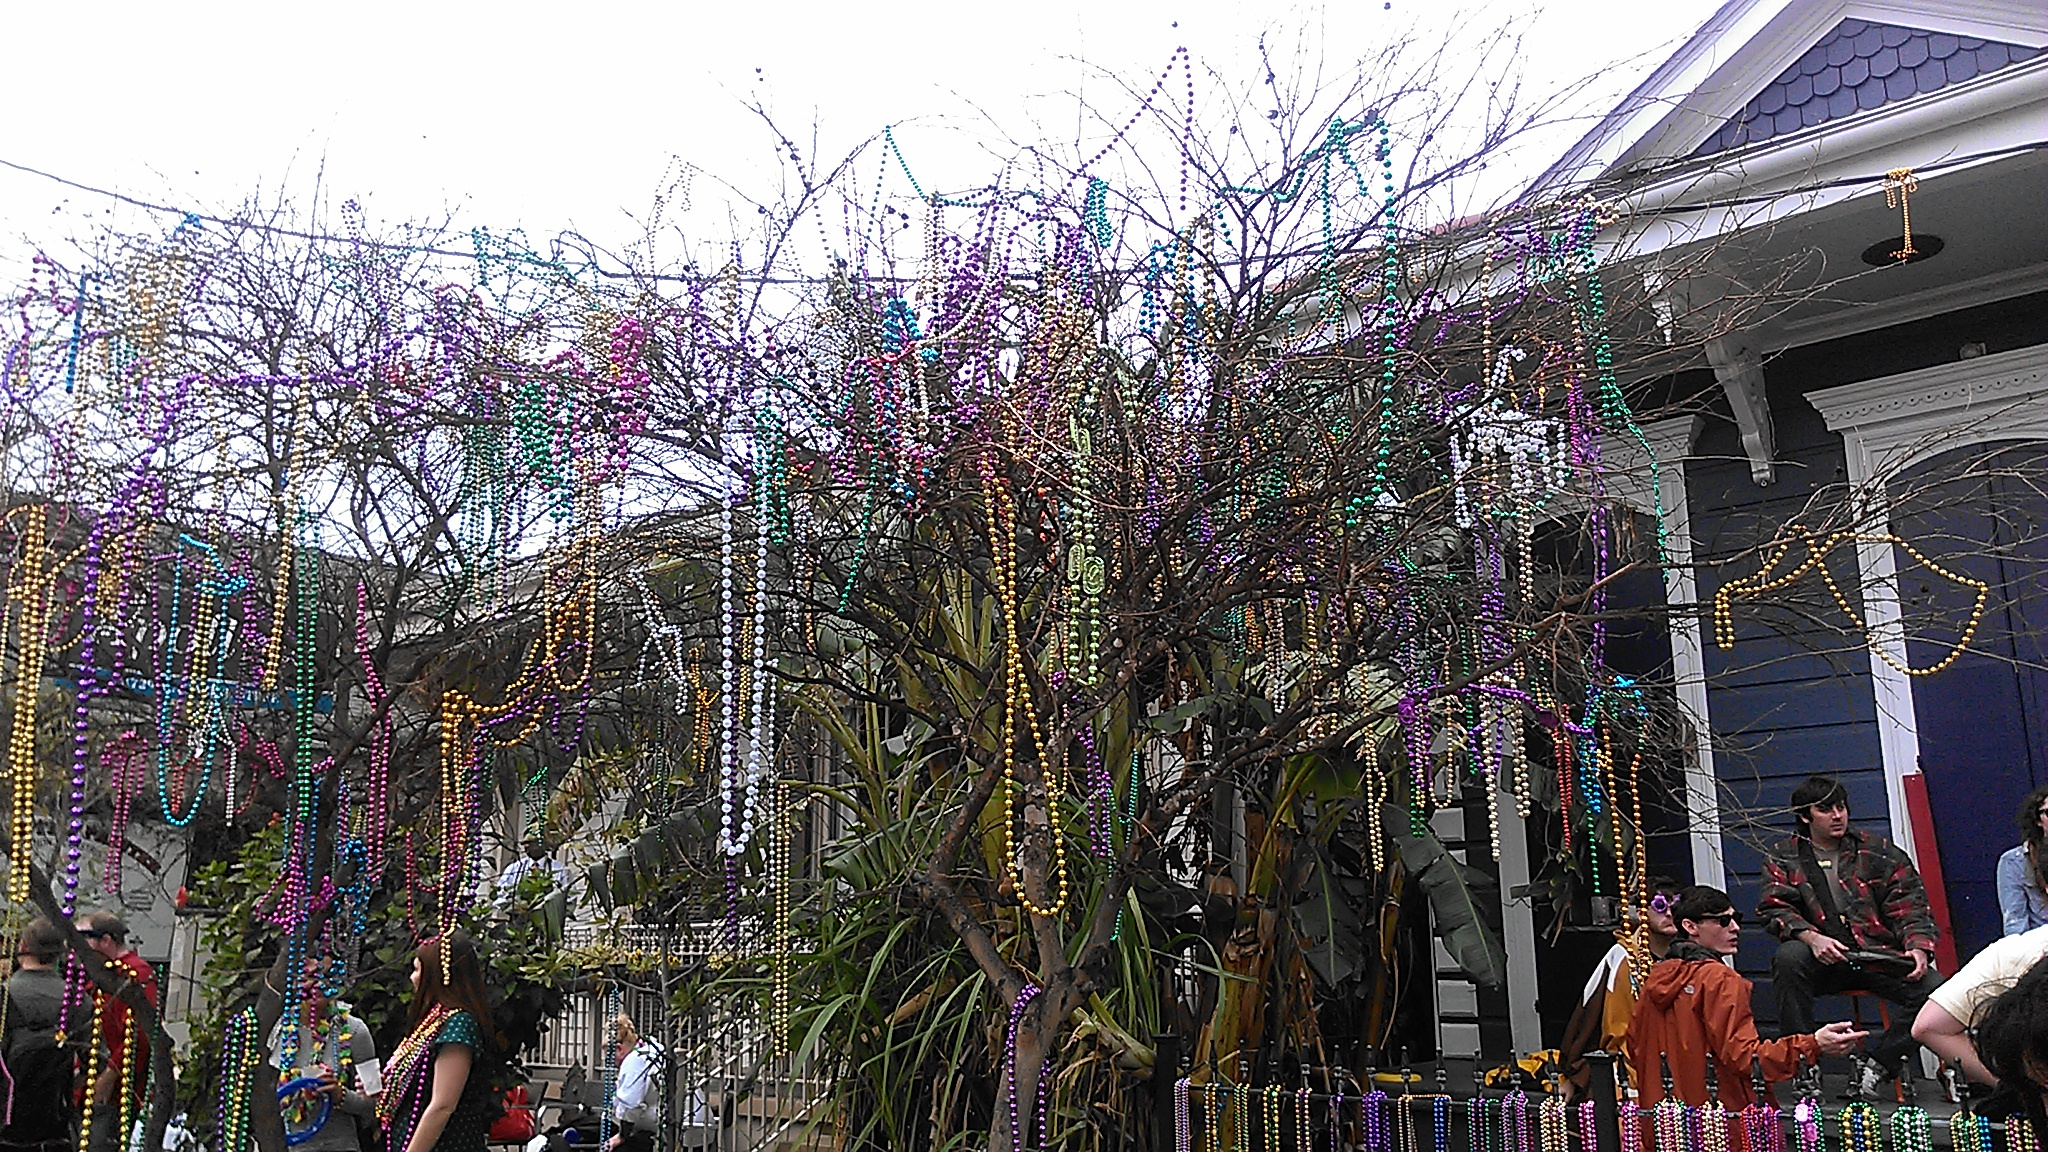 You Can Decorate Your Trees With Beads. After The Parades, Kids And  Merrymakers Tossed